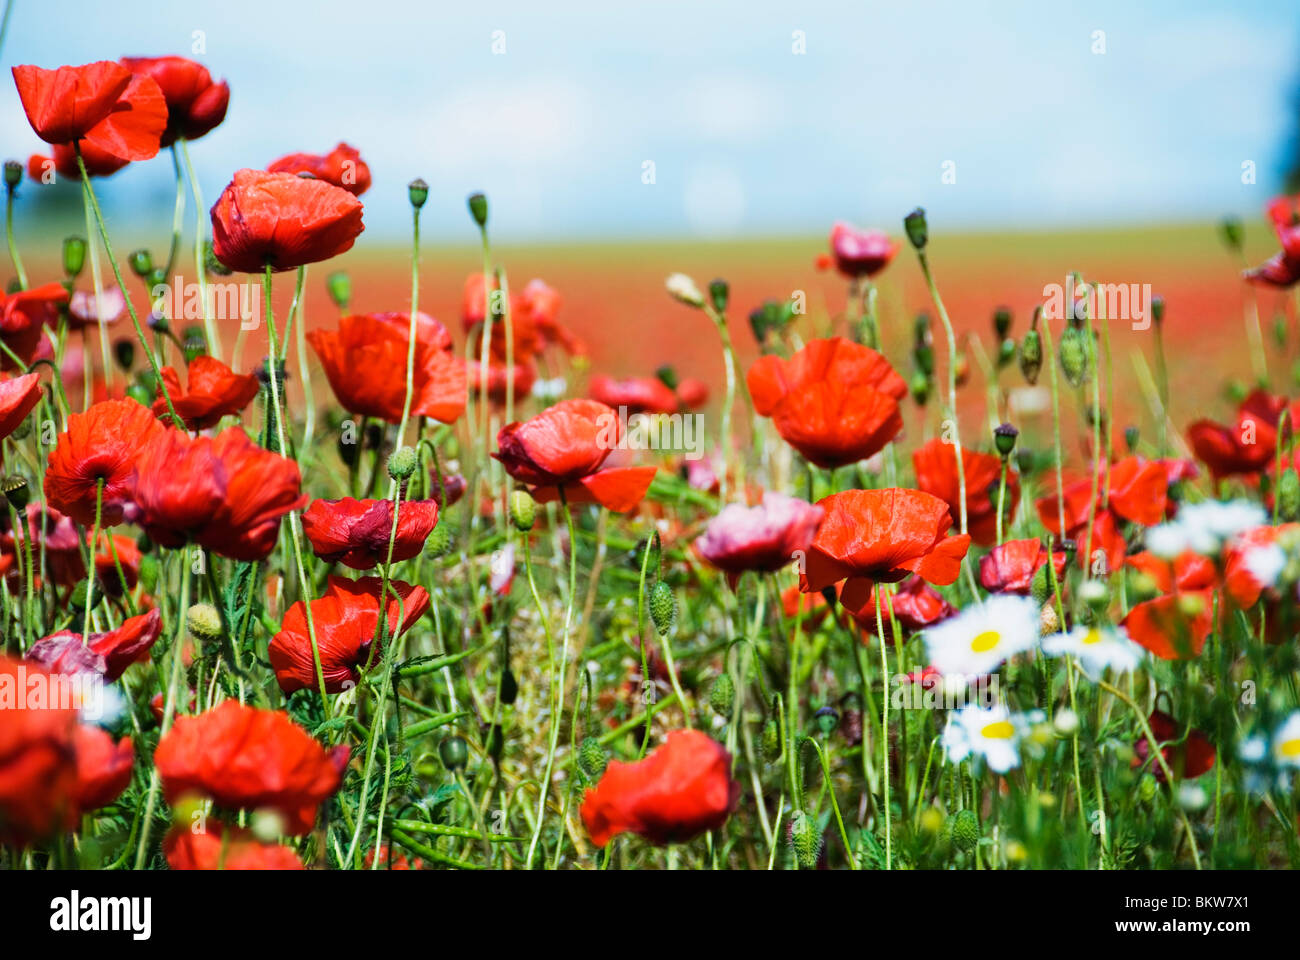 A lot of flowers - Stock Image